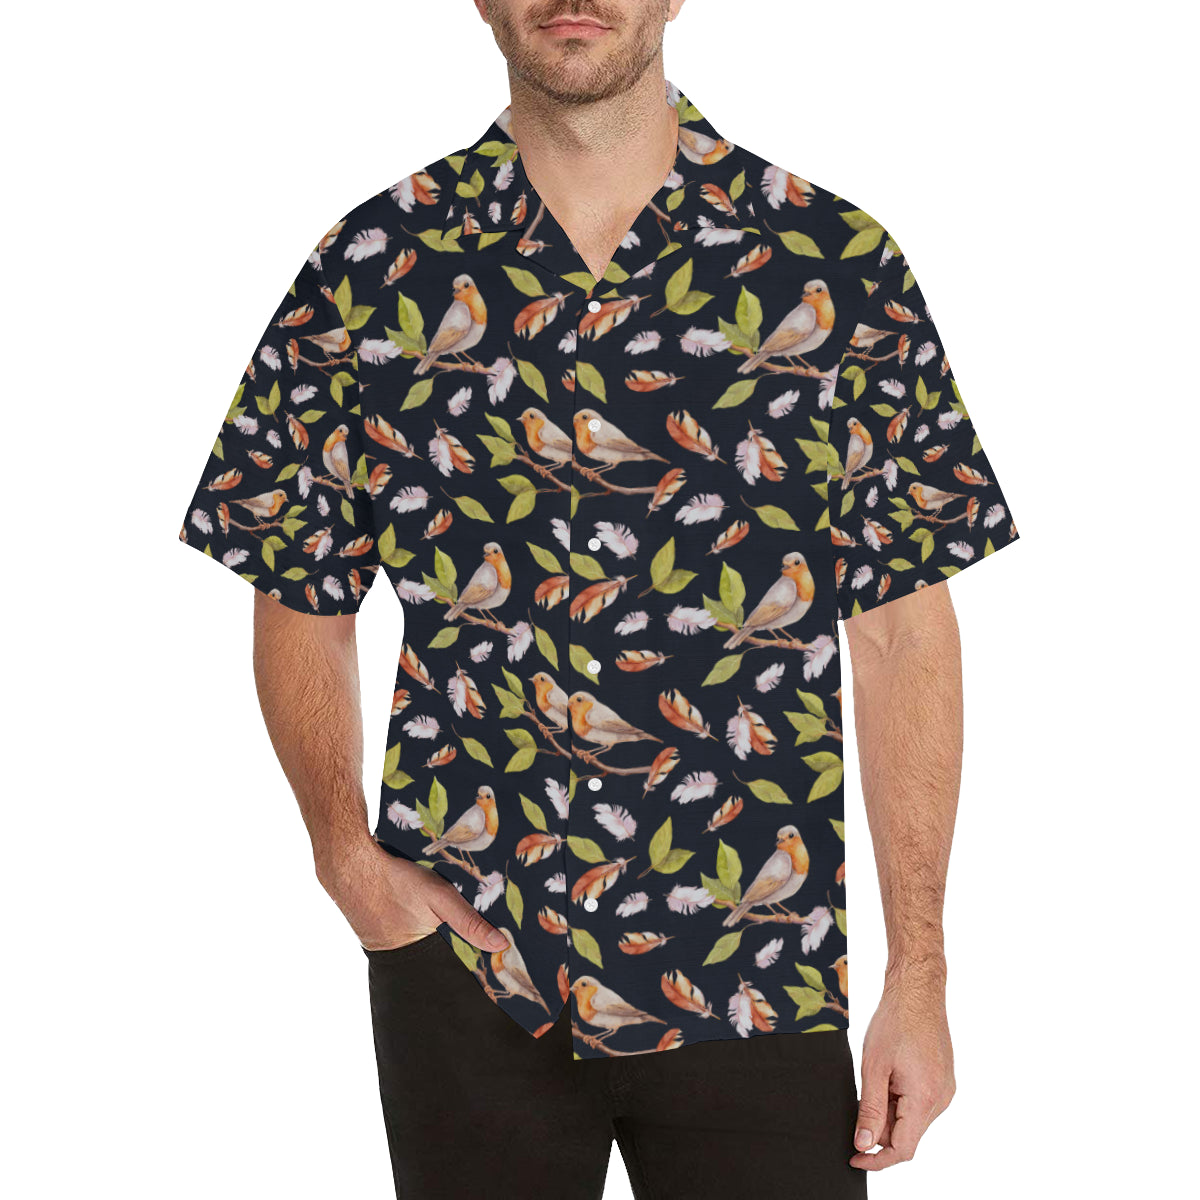 Birds Pattern Print Design 02 Hawaiian Shirt